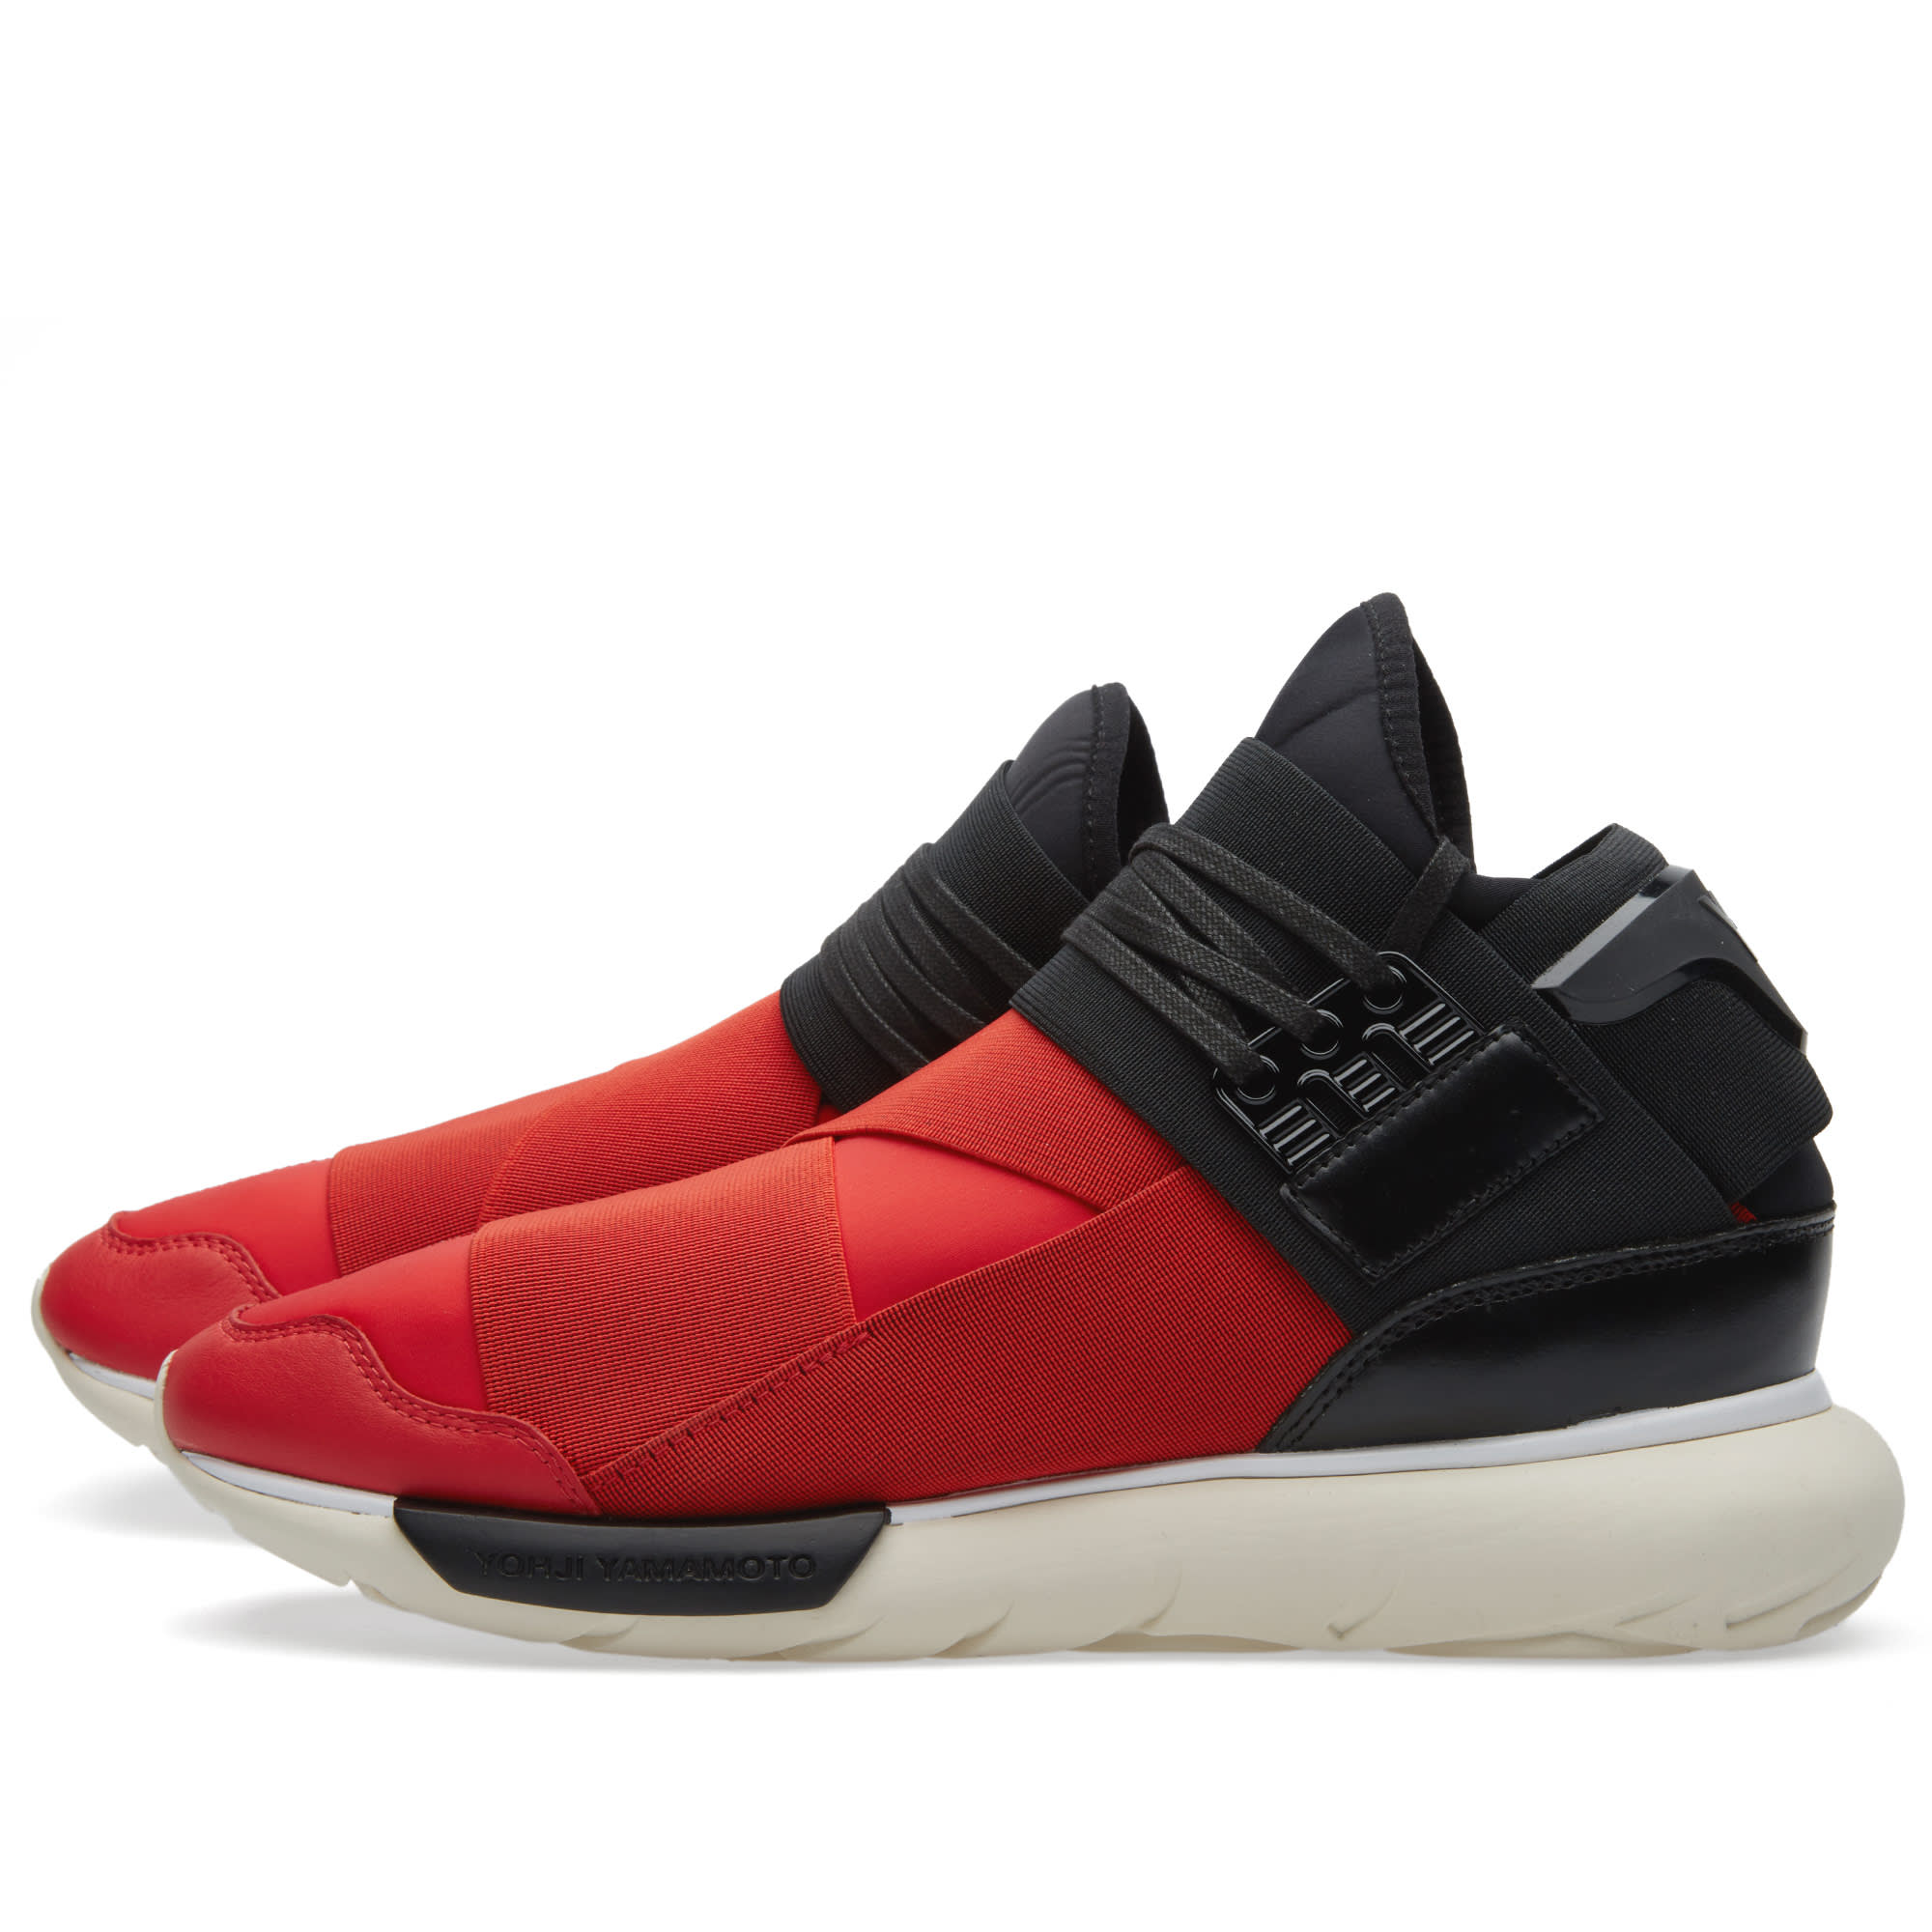 b66c703053072 Y-3 Qasa High Royal Red   Black